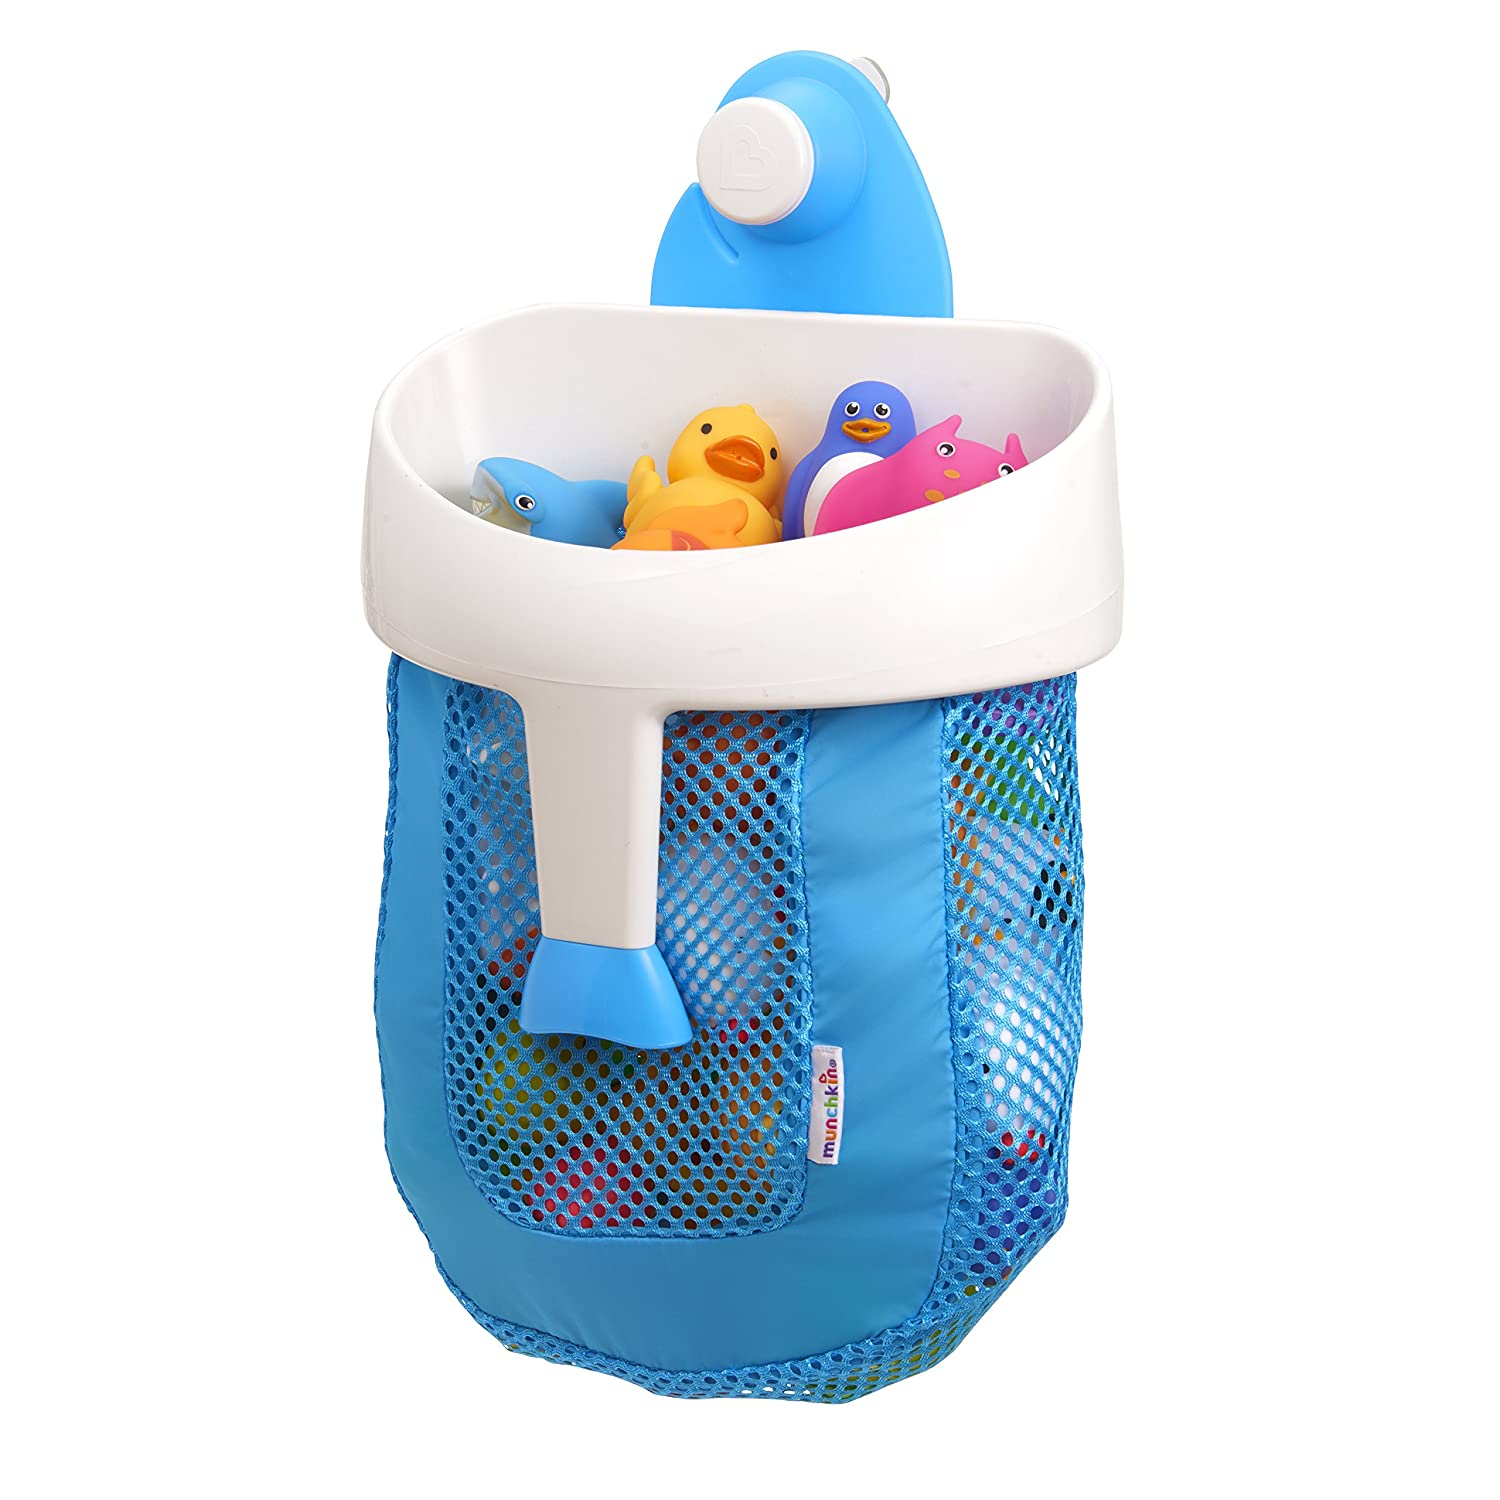 Amazon.com : Munchkin Super Scoop Bath Toy Organizer : Baby